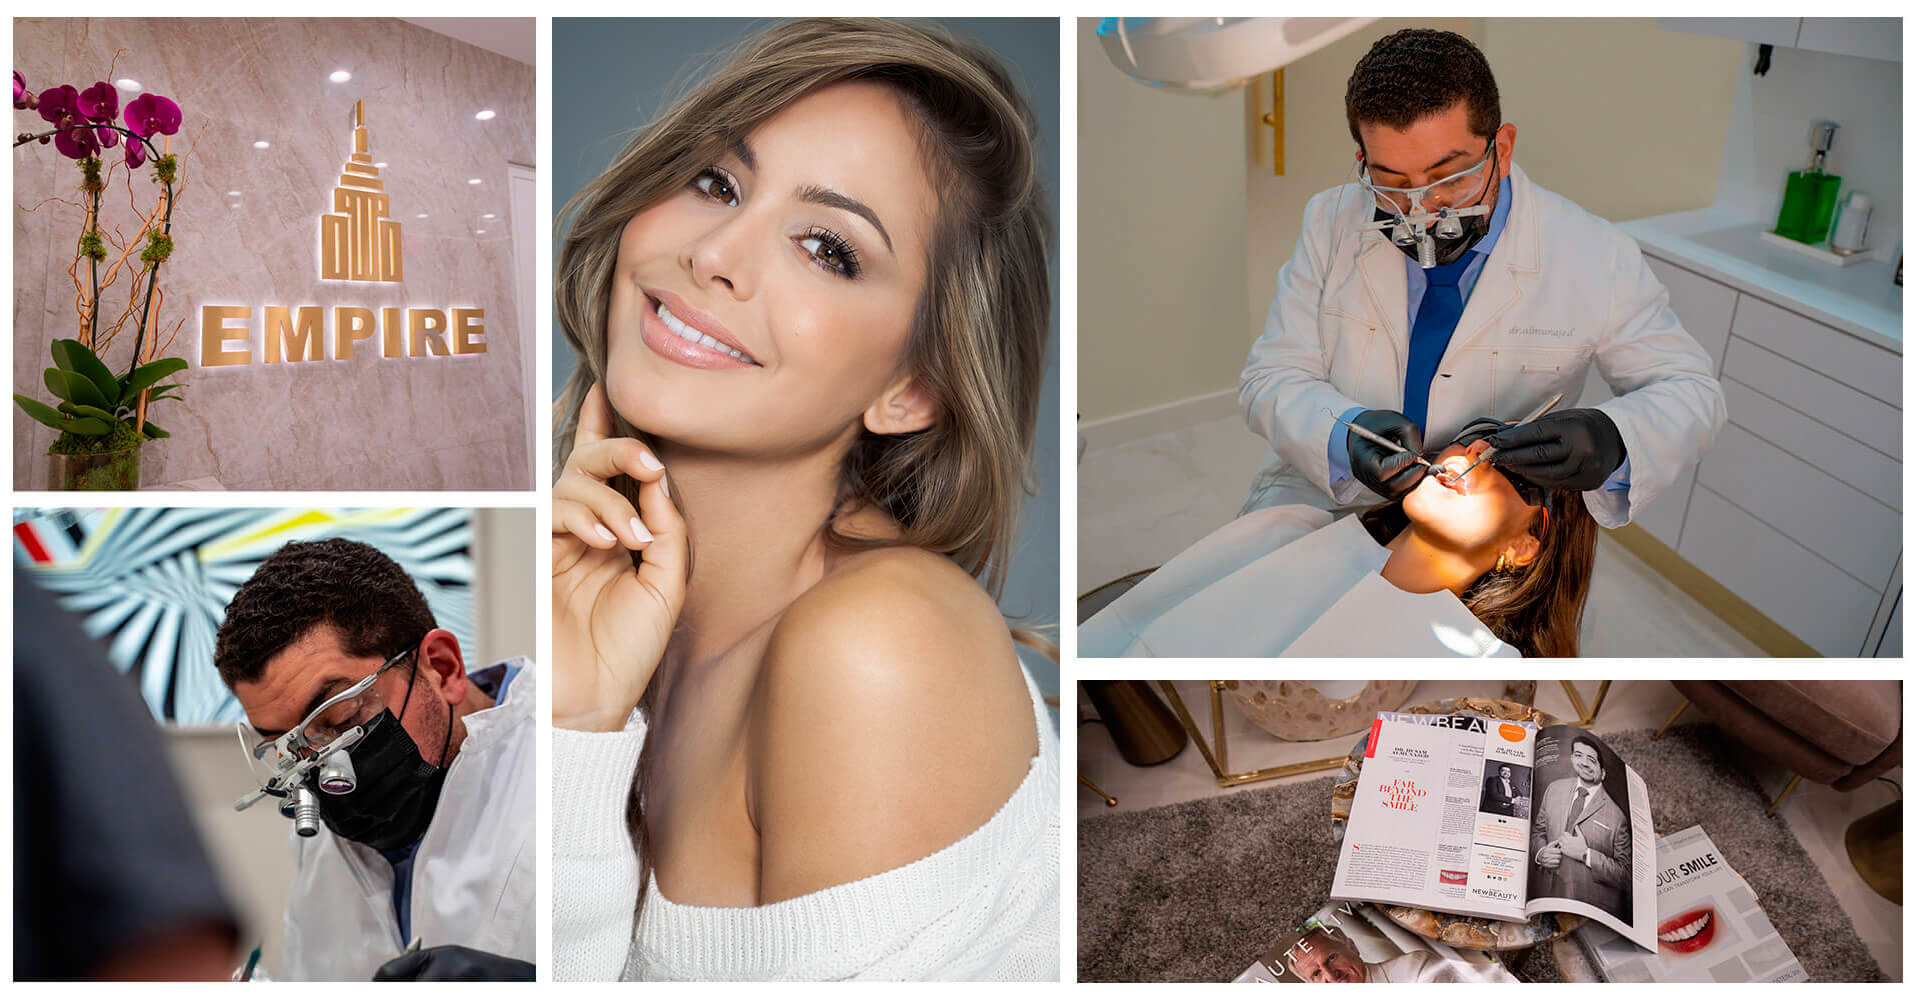 A collage of the different ornaments of our dental office and Dr. Husam working with his patients